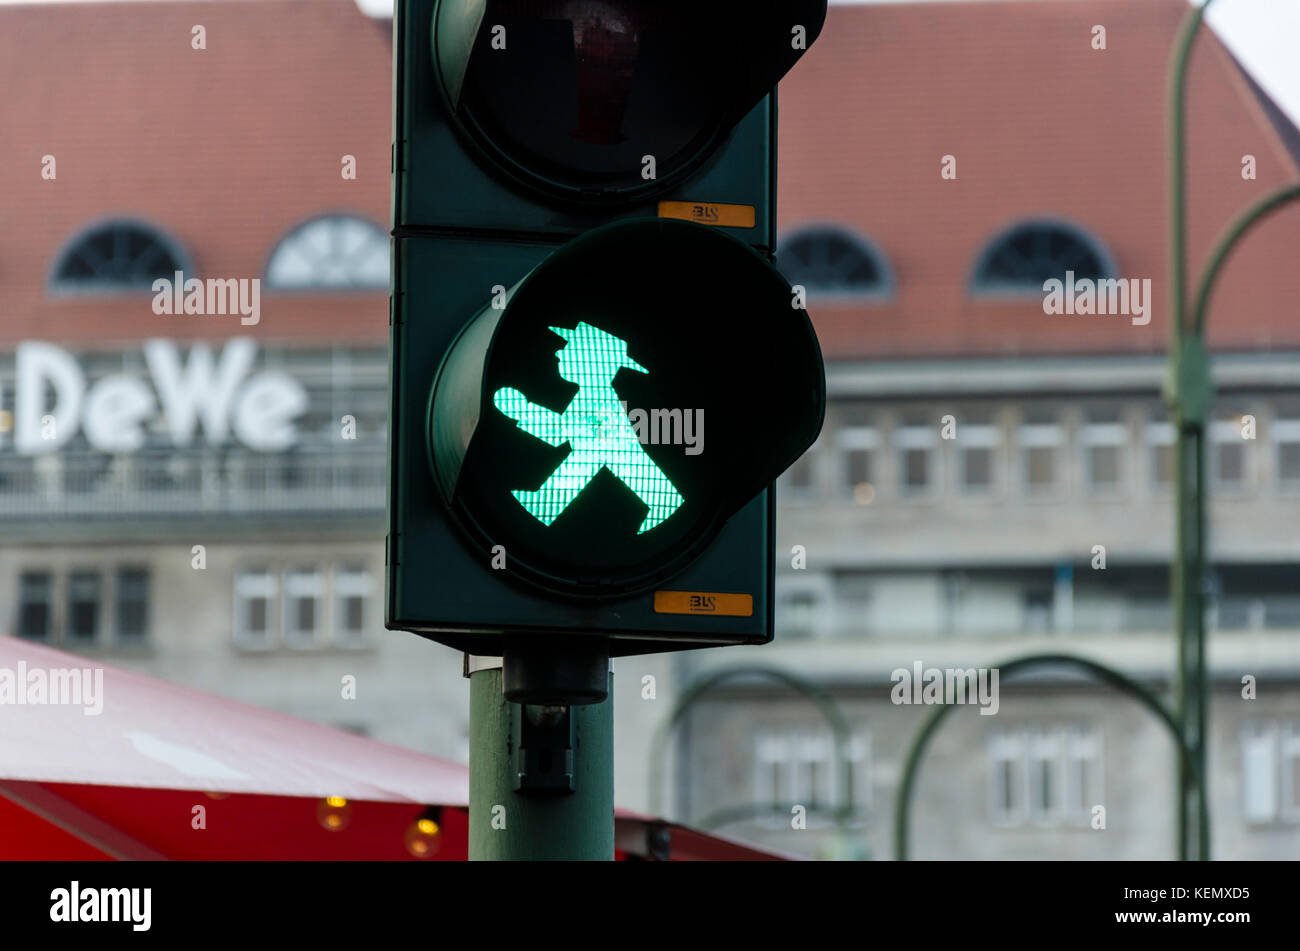 East German green Ampelmännchen, little traffic light men, Ampelmann, pedestrian signals symbol, Berlin, Germany - Stock Image